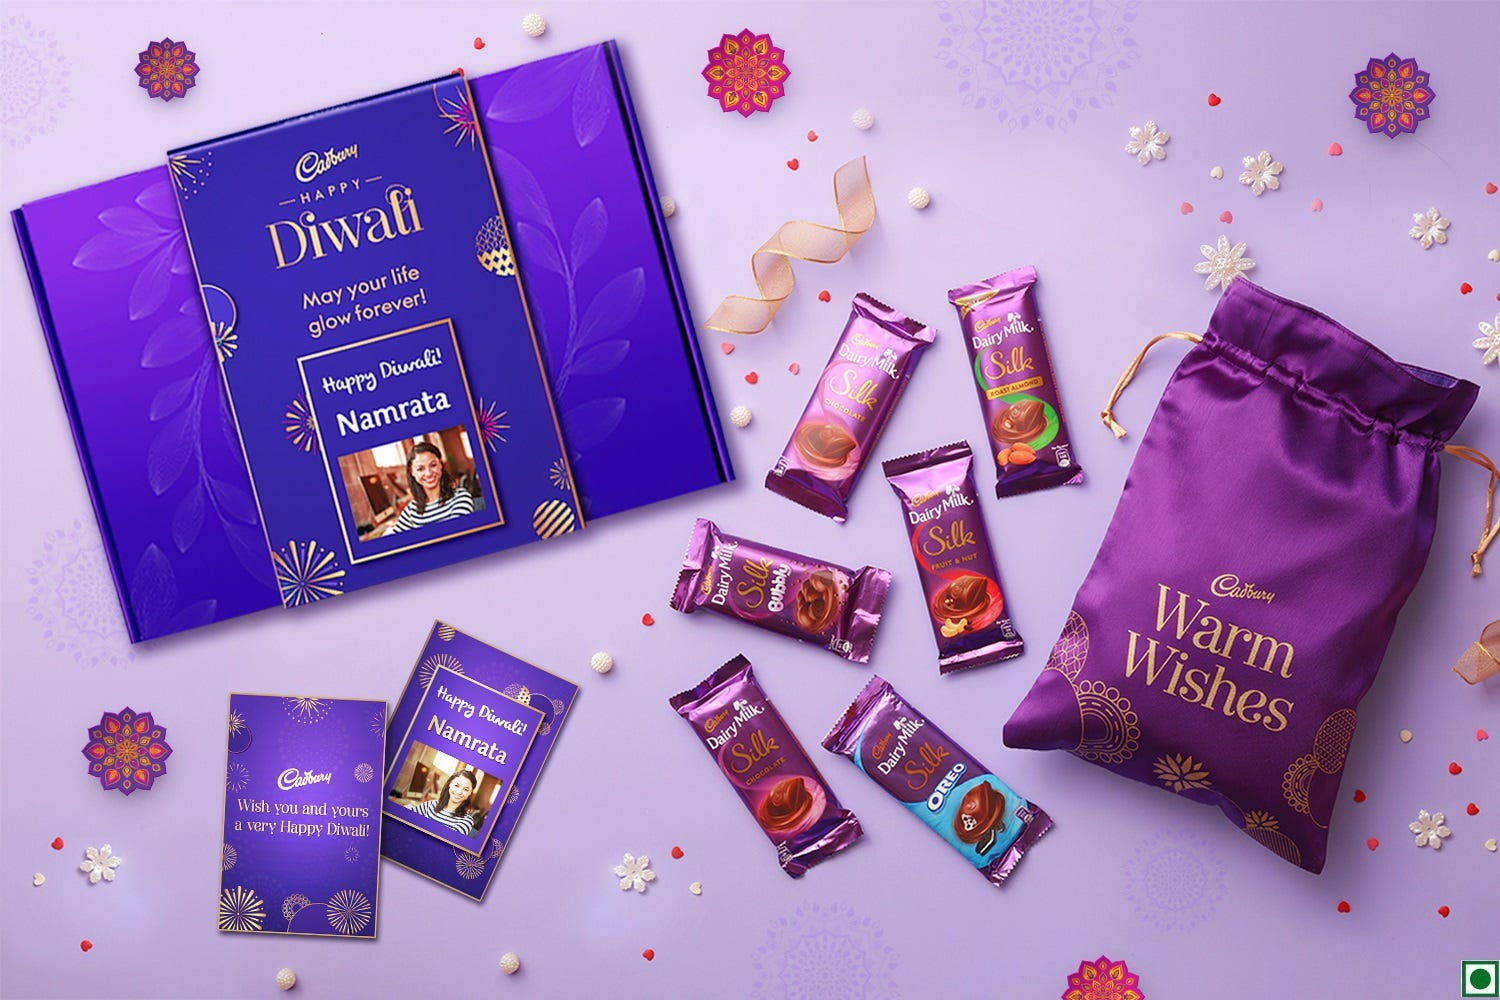 Best Diwali Gift Ideas for Husband to Light up Your Marriage